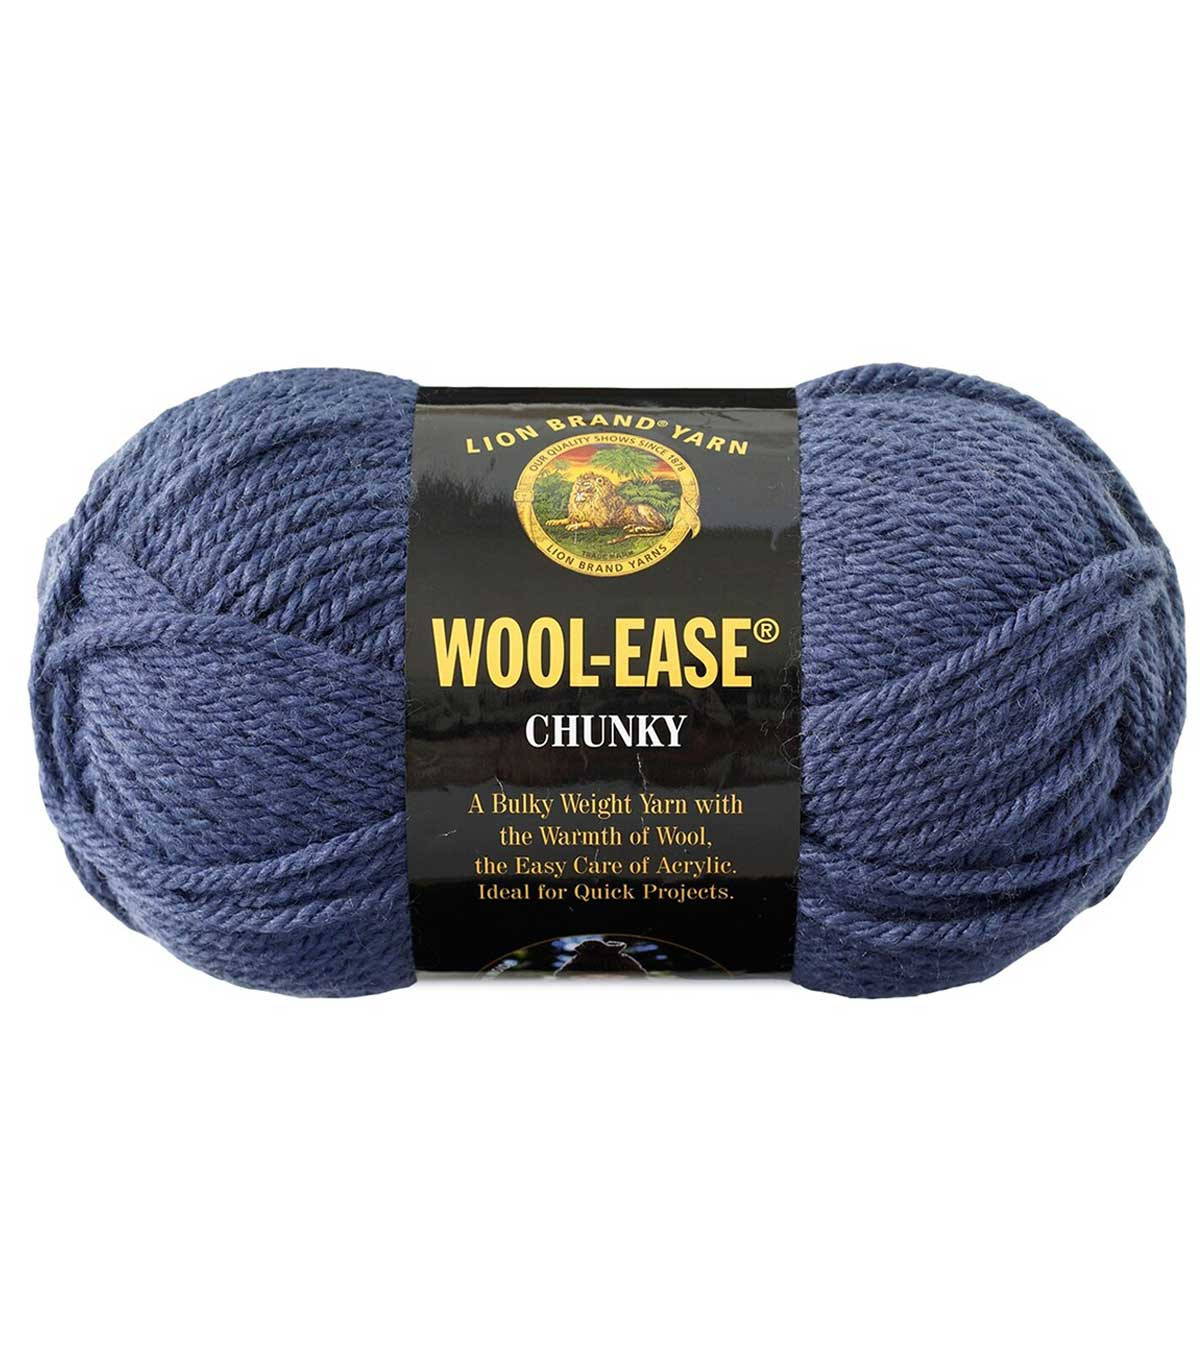 Lion Brand Wool Ease Awesome Lion Brand Wool Ease Chunky Yarn Of Lion Brand Wool Ease Elegant Lion Brand Wool Ease Crochet Yarn & Wool